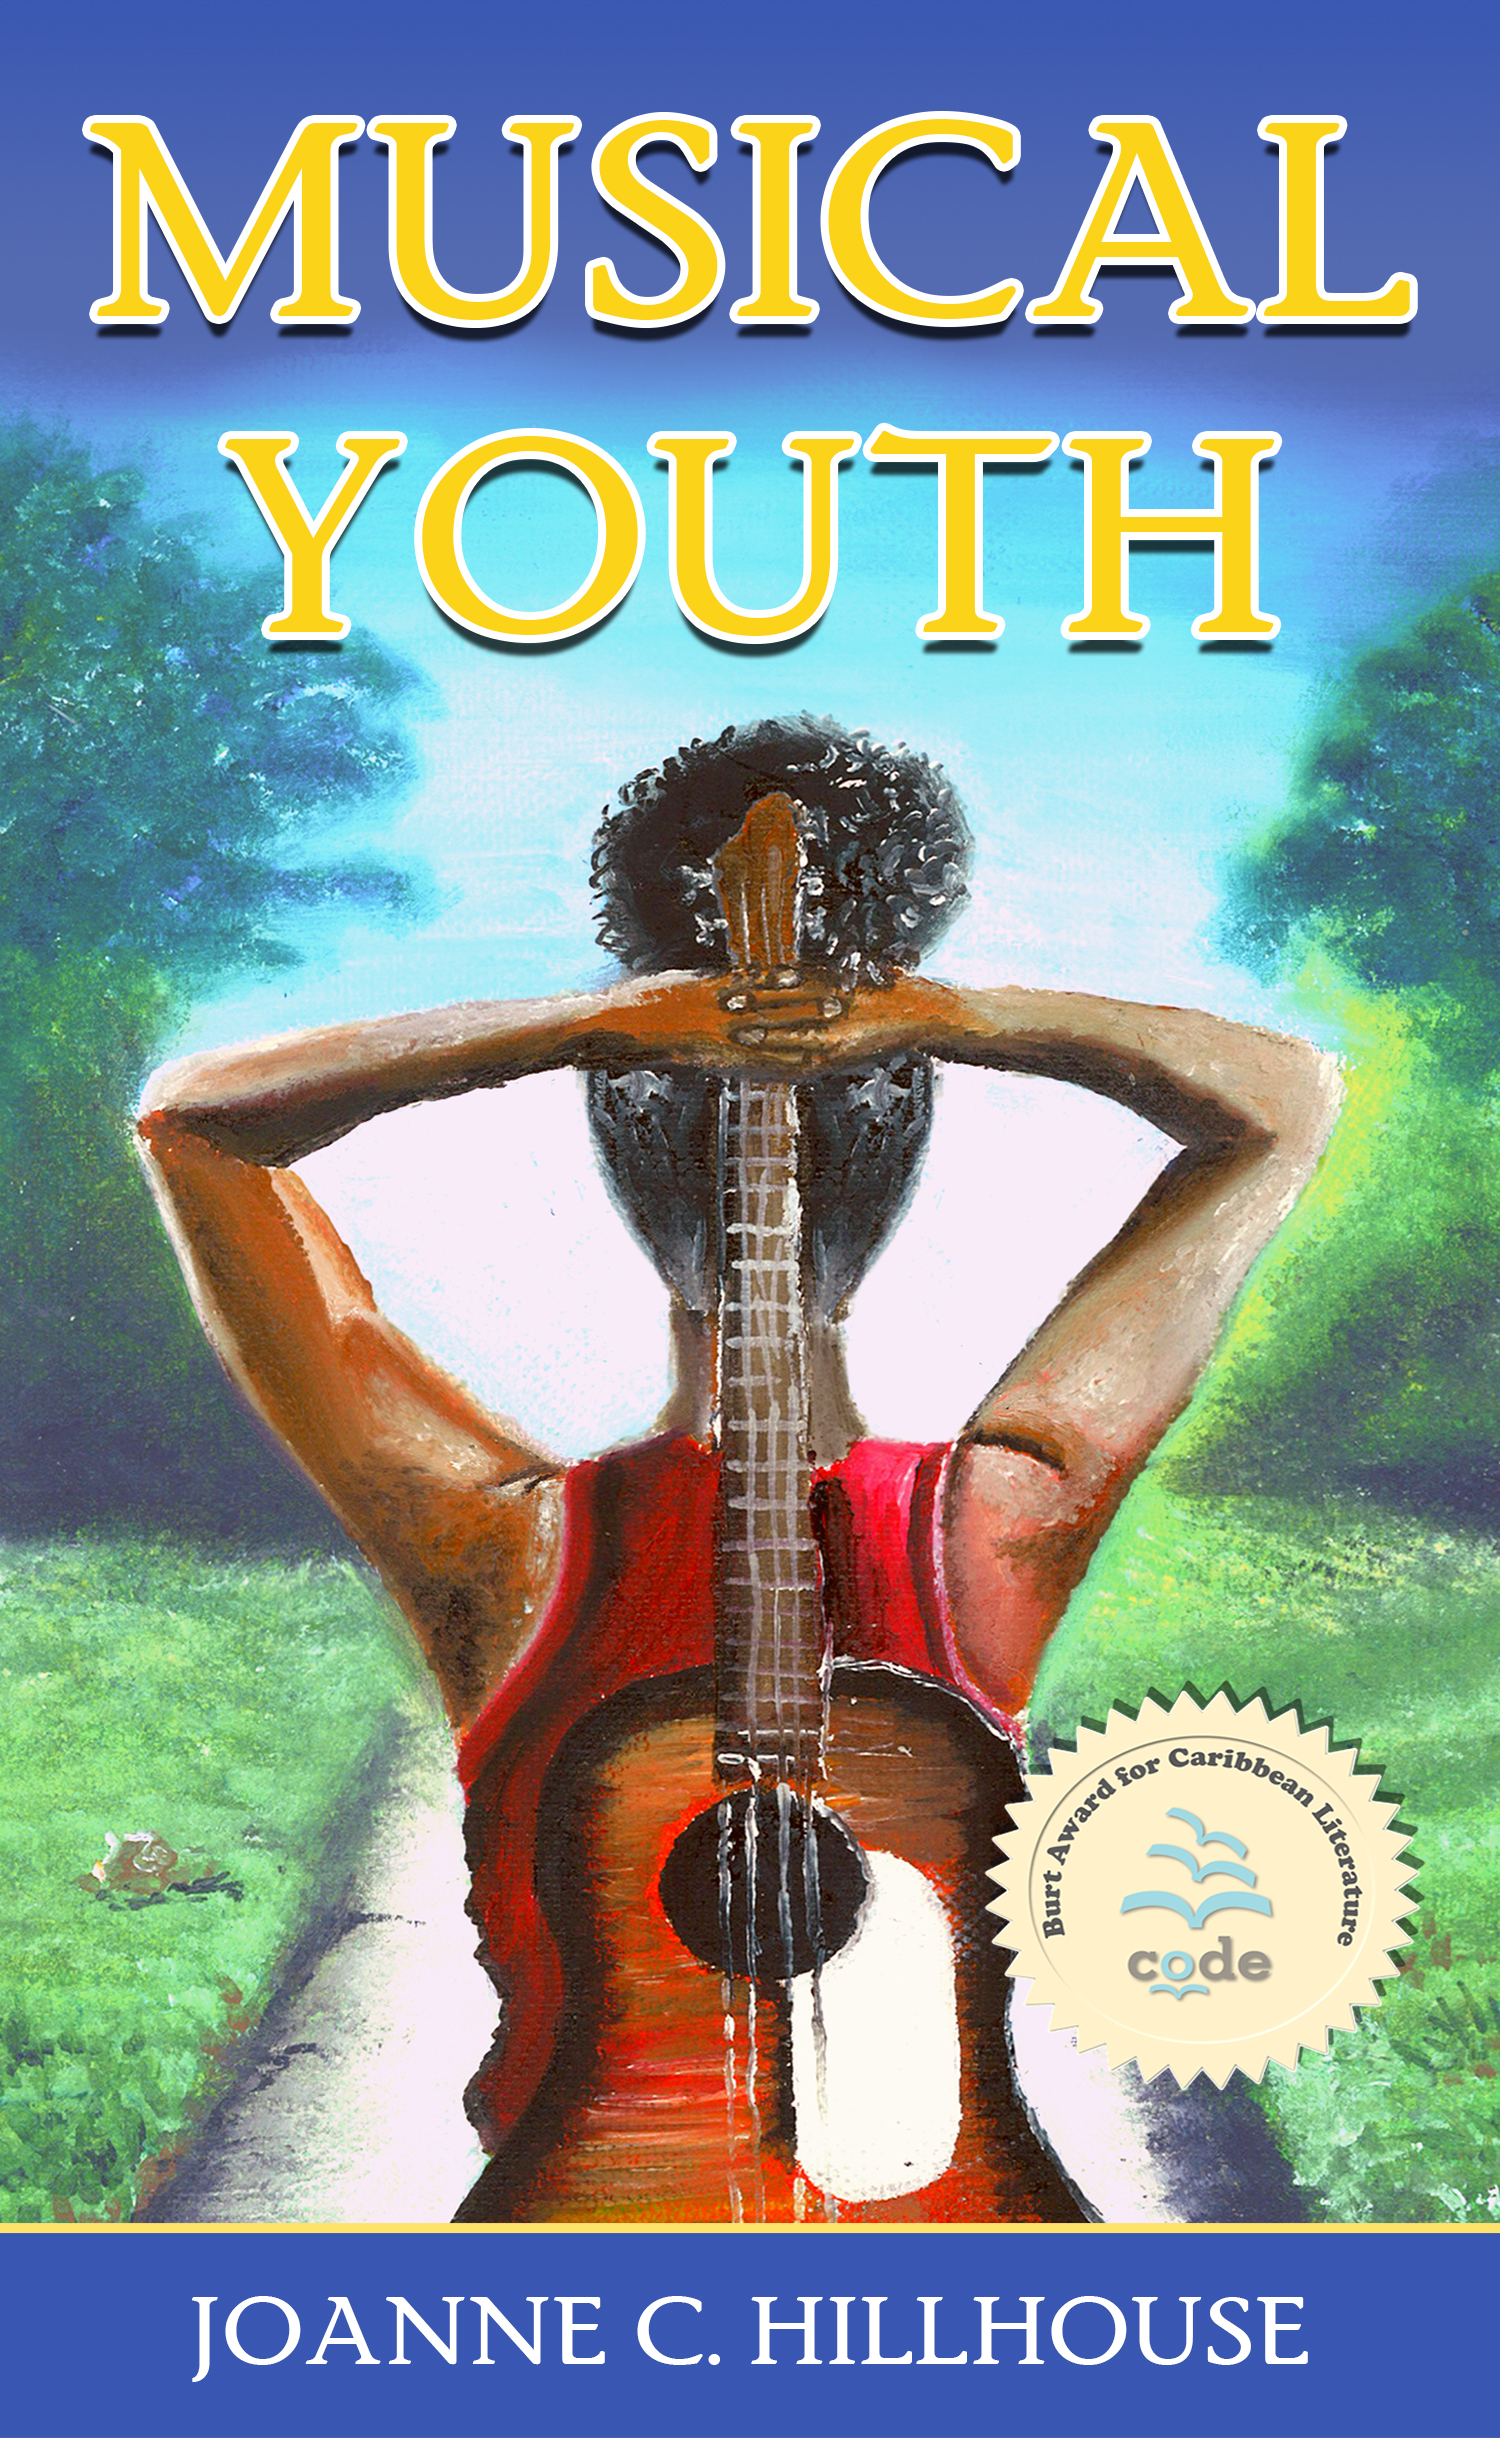 MUSICAL_YOUTH_Cover_FRONT_Final